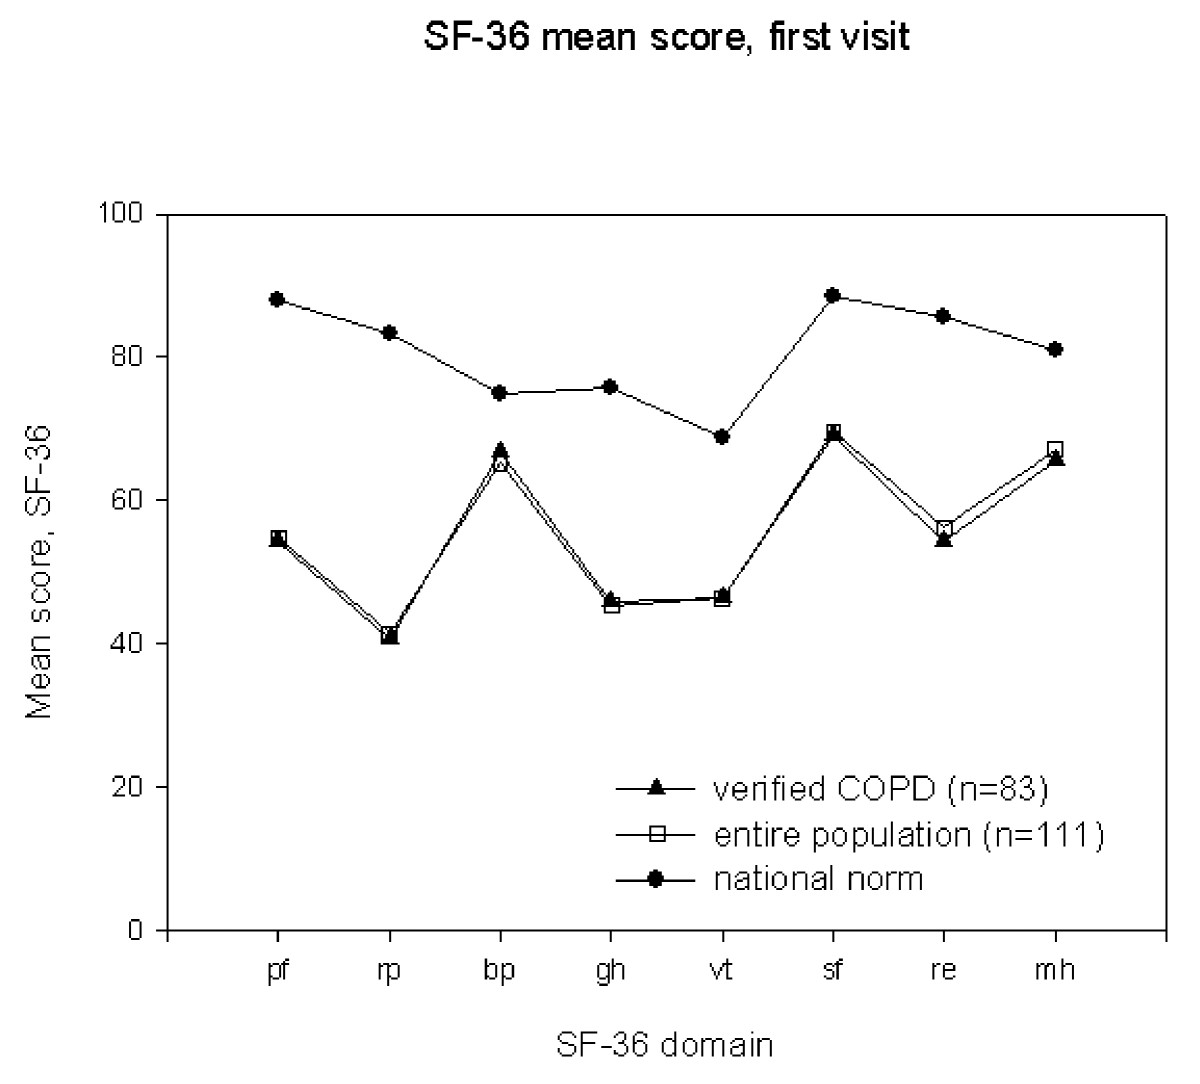 https://static-content.springer.com/image/art%3A10.1186%2F1477-7525-7-26/MediaObjects/12955_2008_Article_543_Fig1_HTML.jpg